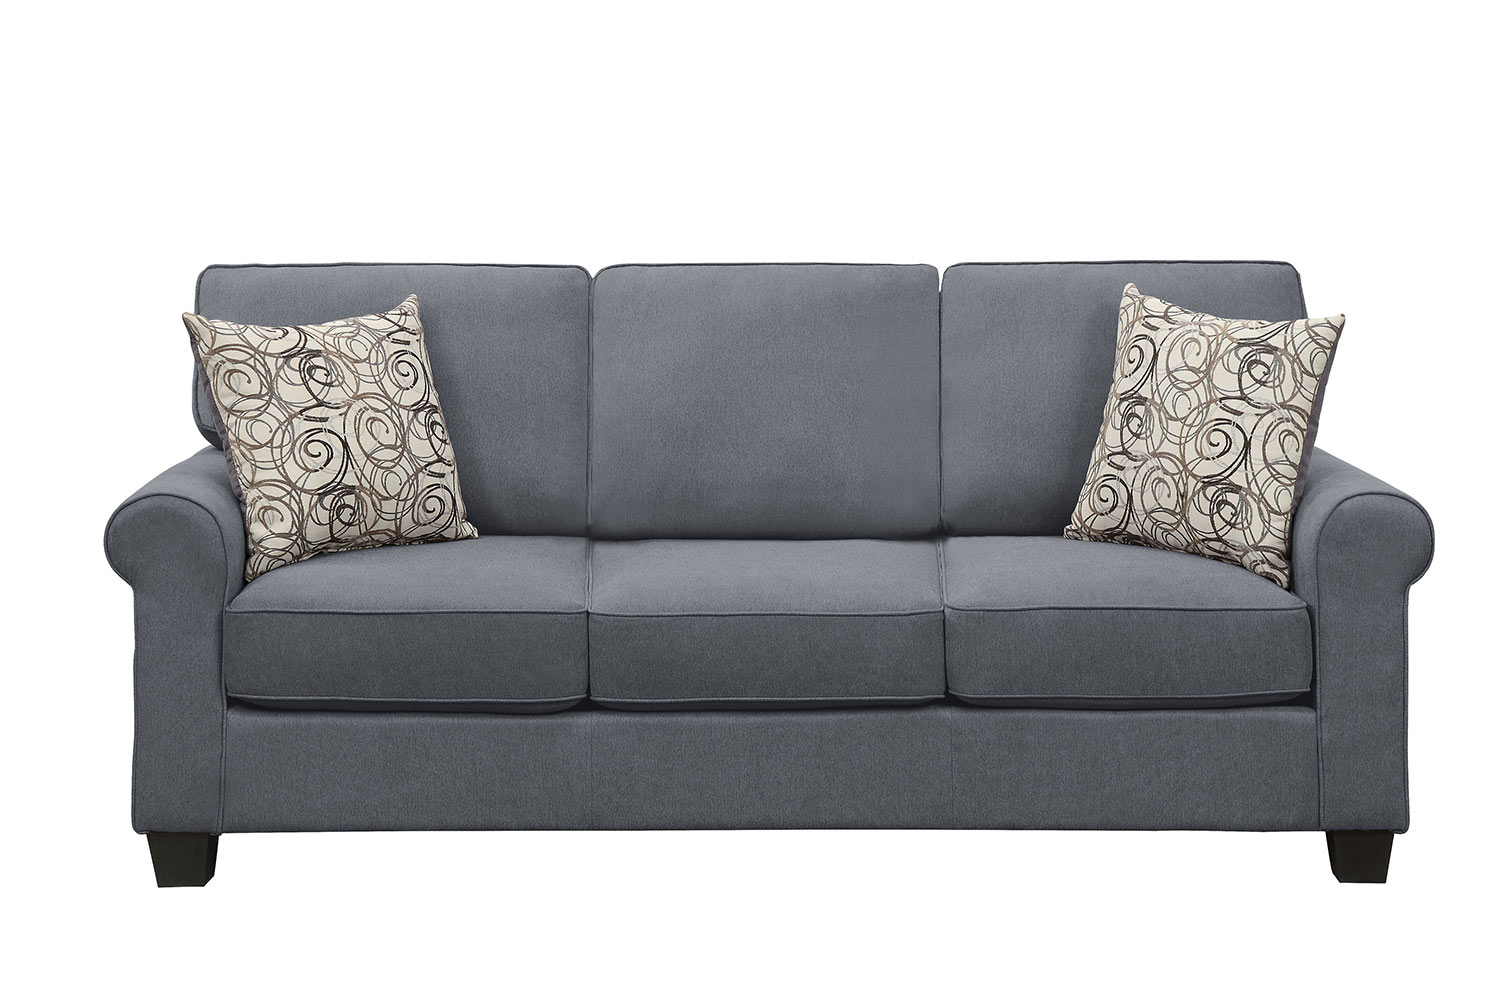 Homelegance Selkirk Sofa - Gray